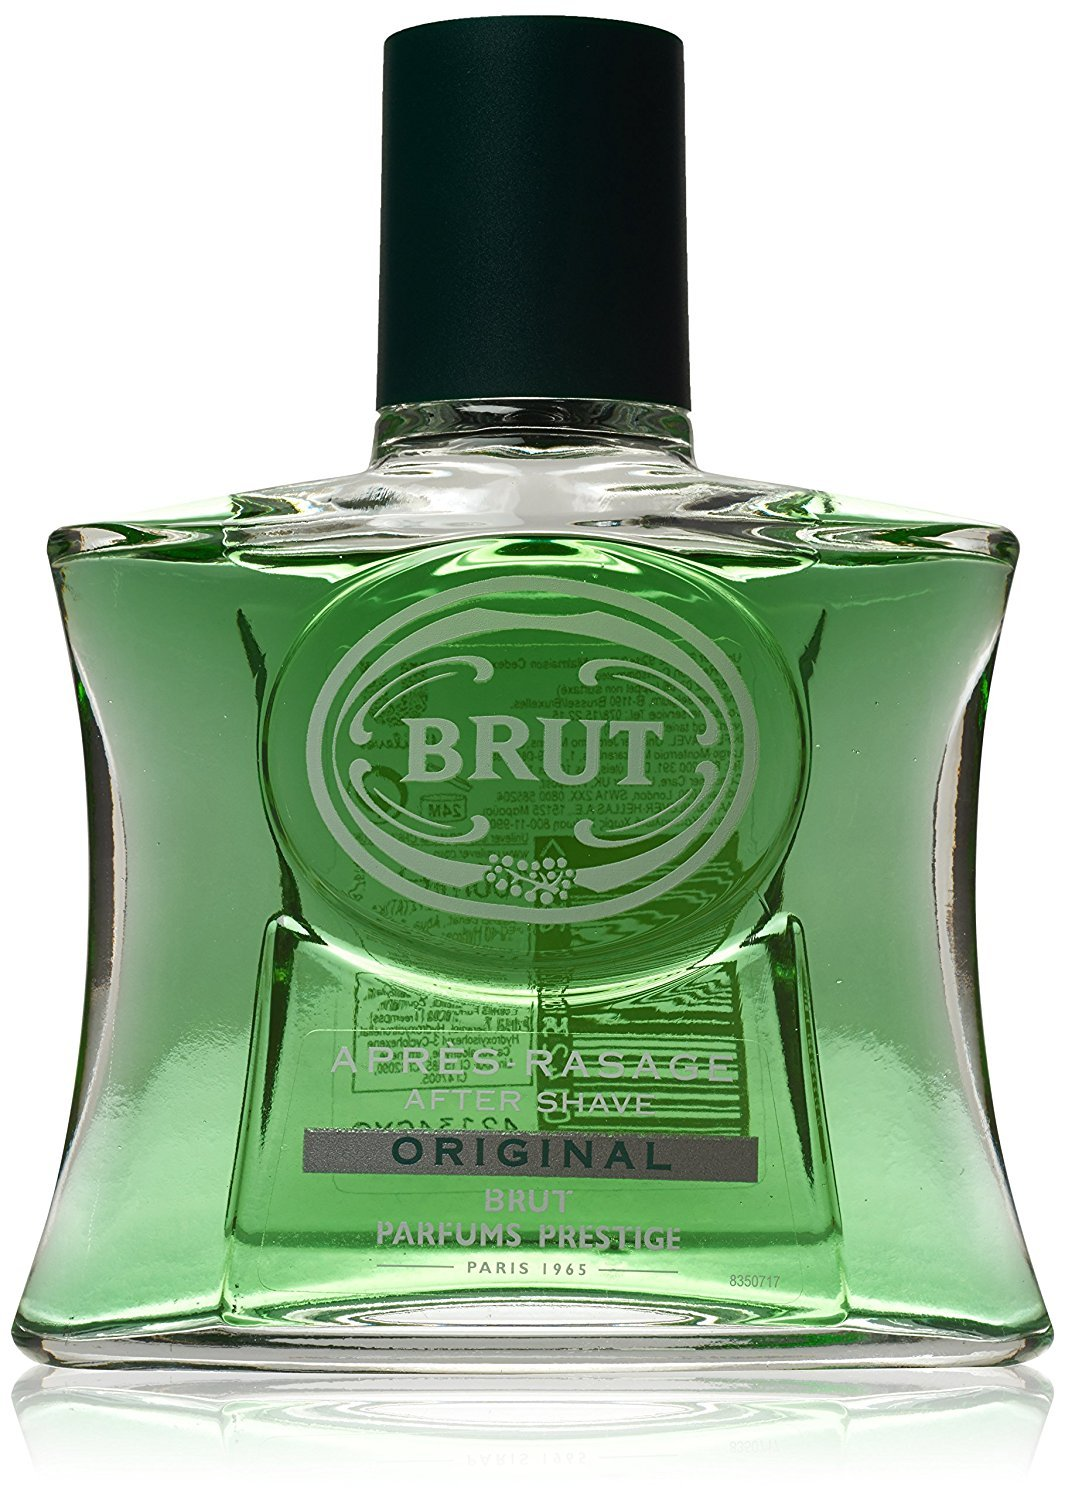 Brut Aftershave Lotion 100 ml. Remember the ad for Brut 33 deodorant which featured footballer Kevin Keegan? Brut has had a revival in recent years